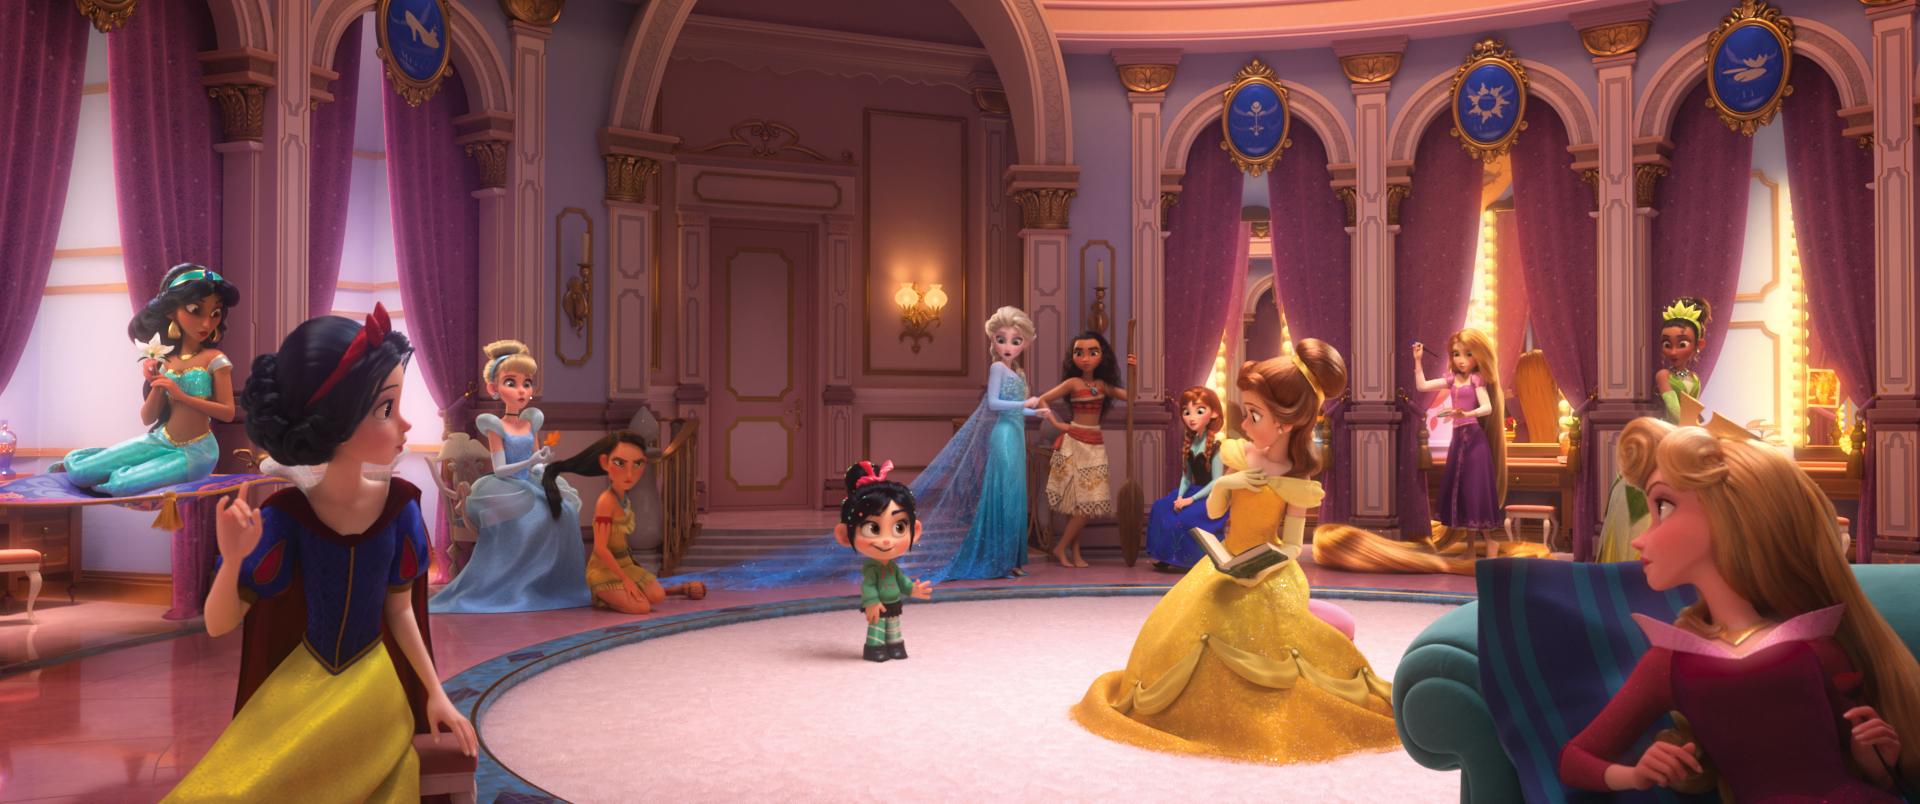 New Ralph Breaks the Internet: Wreck-It Ralph 2 Trailer Gives a New Synergistic Look at the Internet